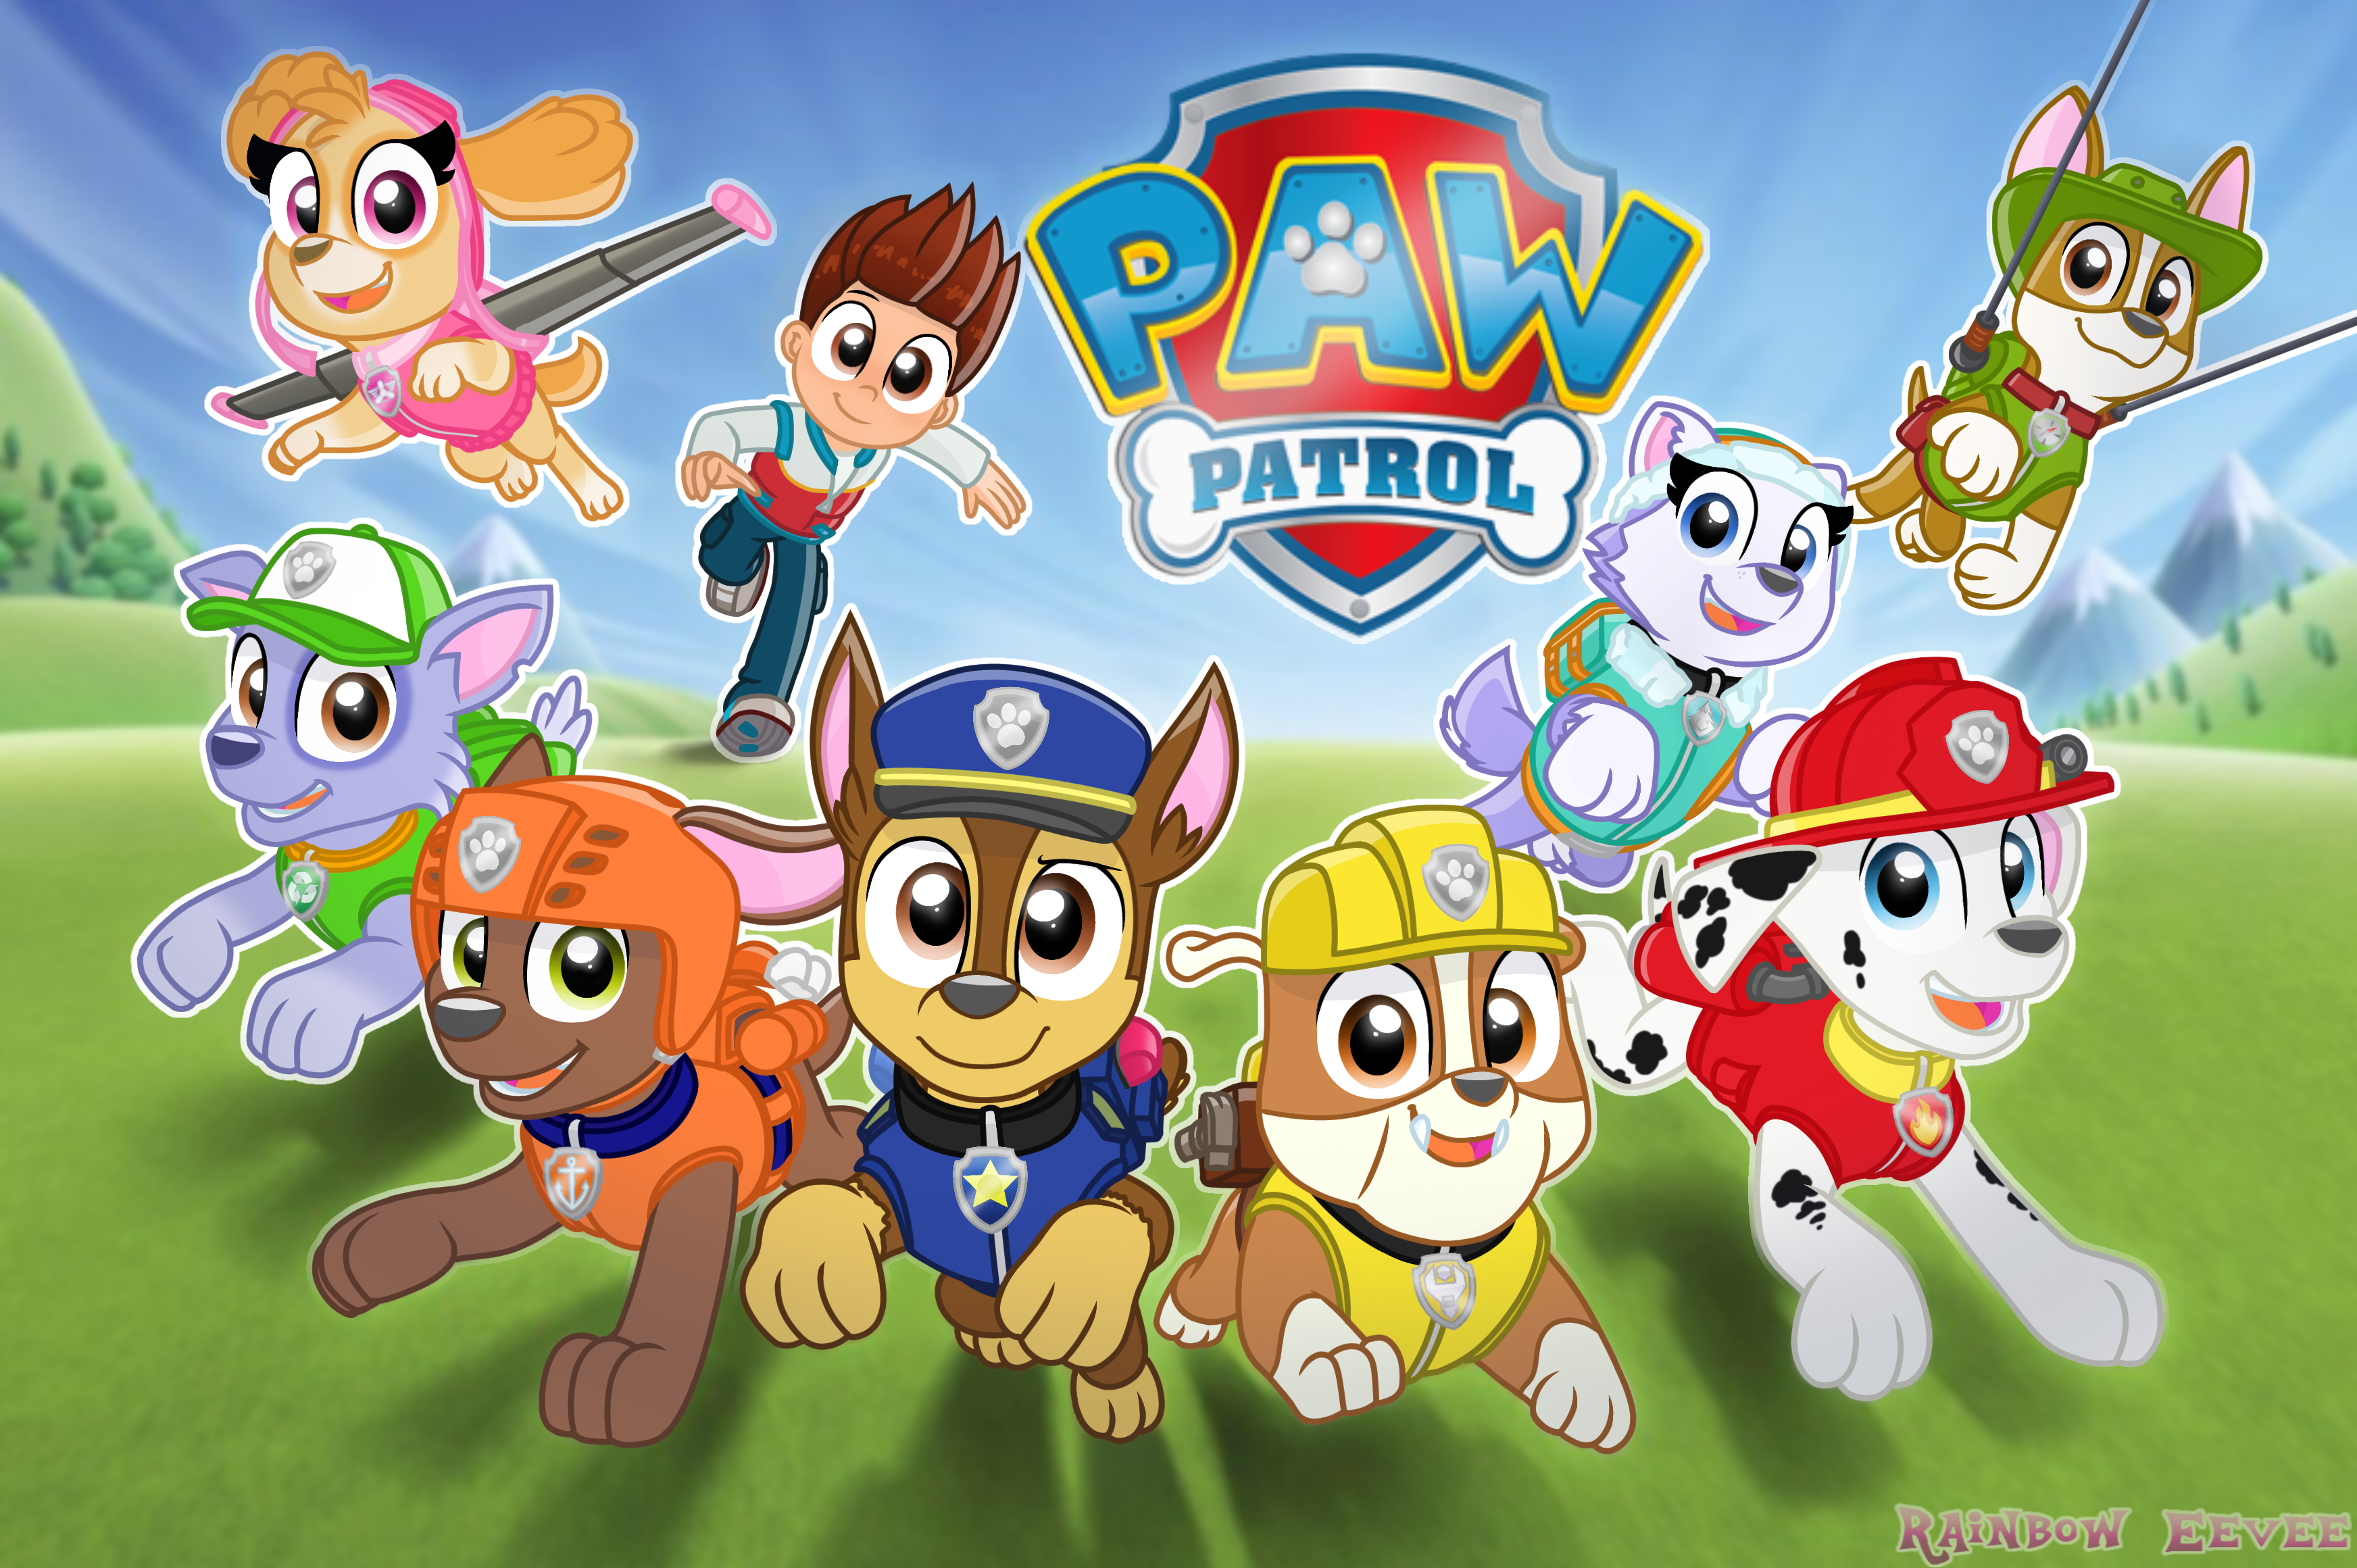 Paw Patrol Rainbow Eevee Wallpaper Poster By Rainboweeveede On Newgrounds Eevee Wallpaper Paw Patrol Action Wallpaper